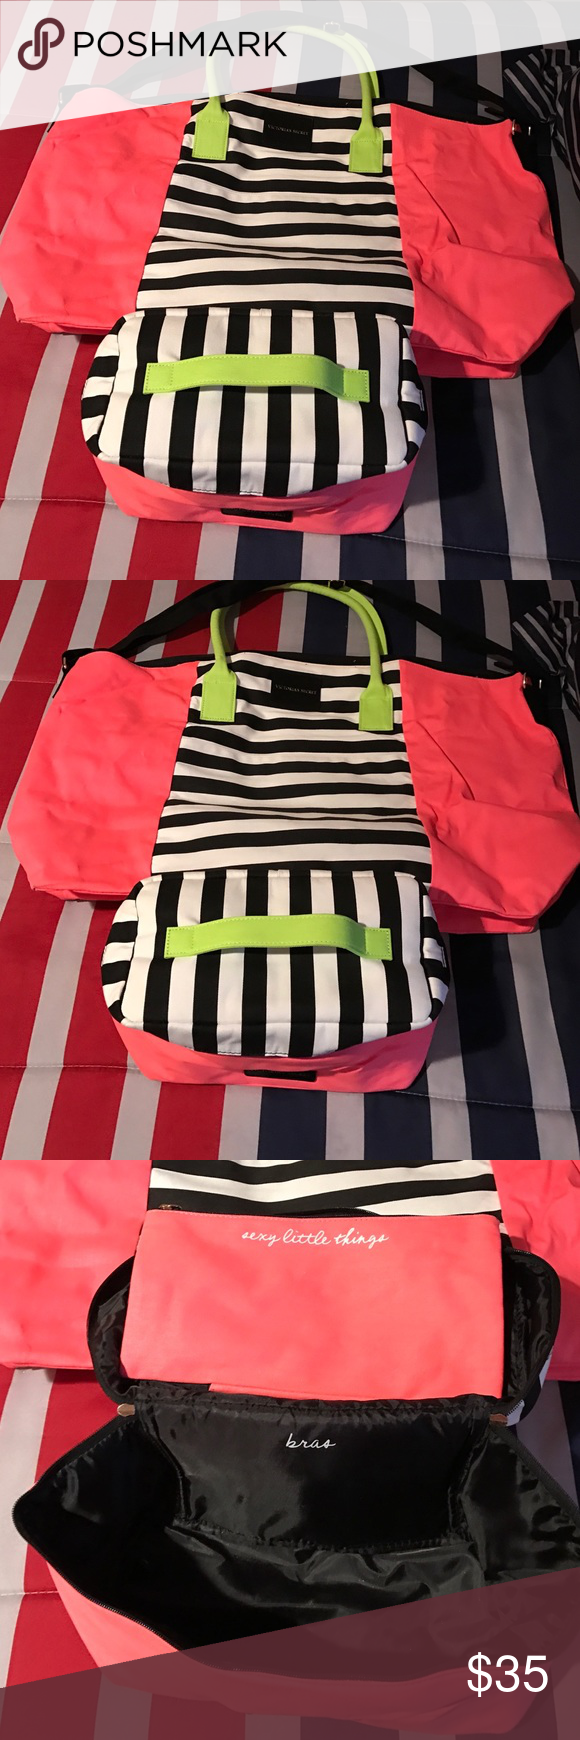 Bag Extra large bag with make up bag never used PINK Victoria's Secret Bags Travel Bags